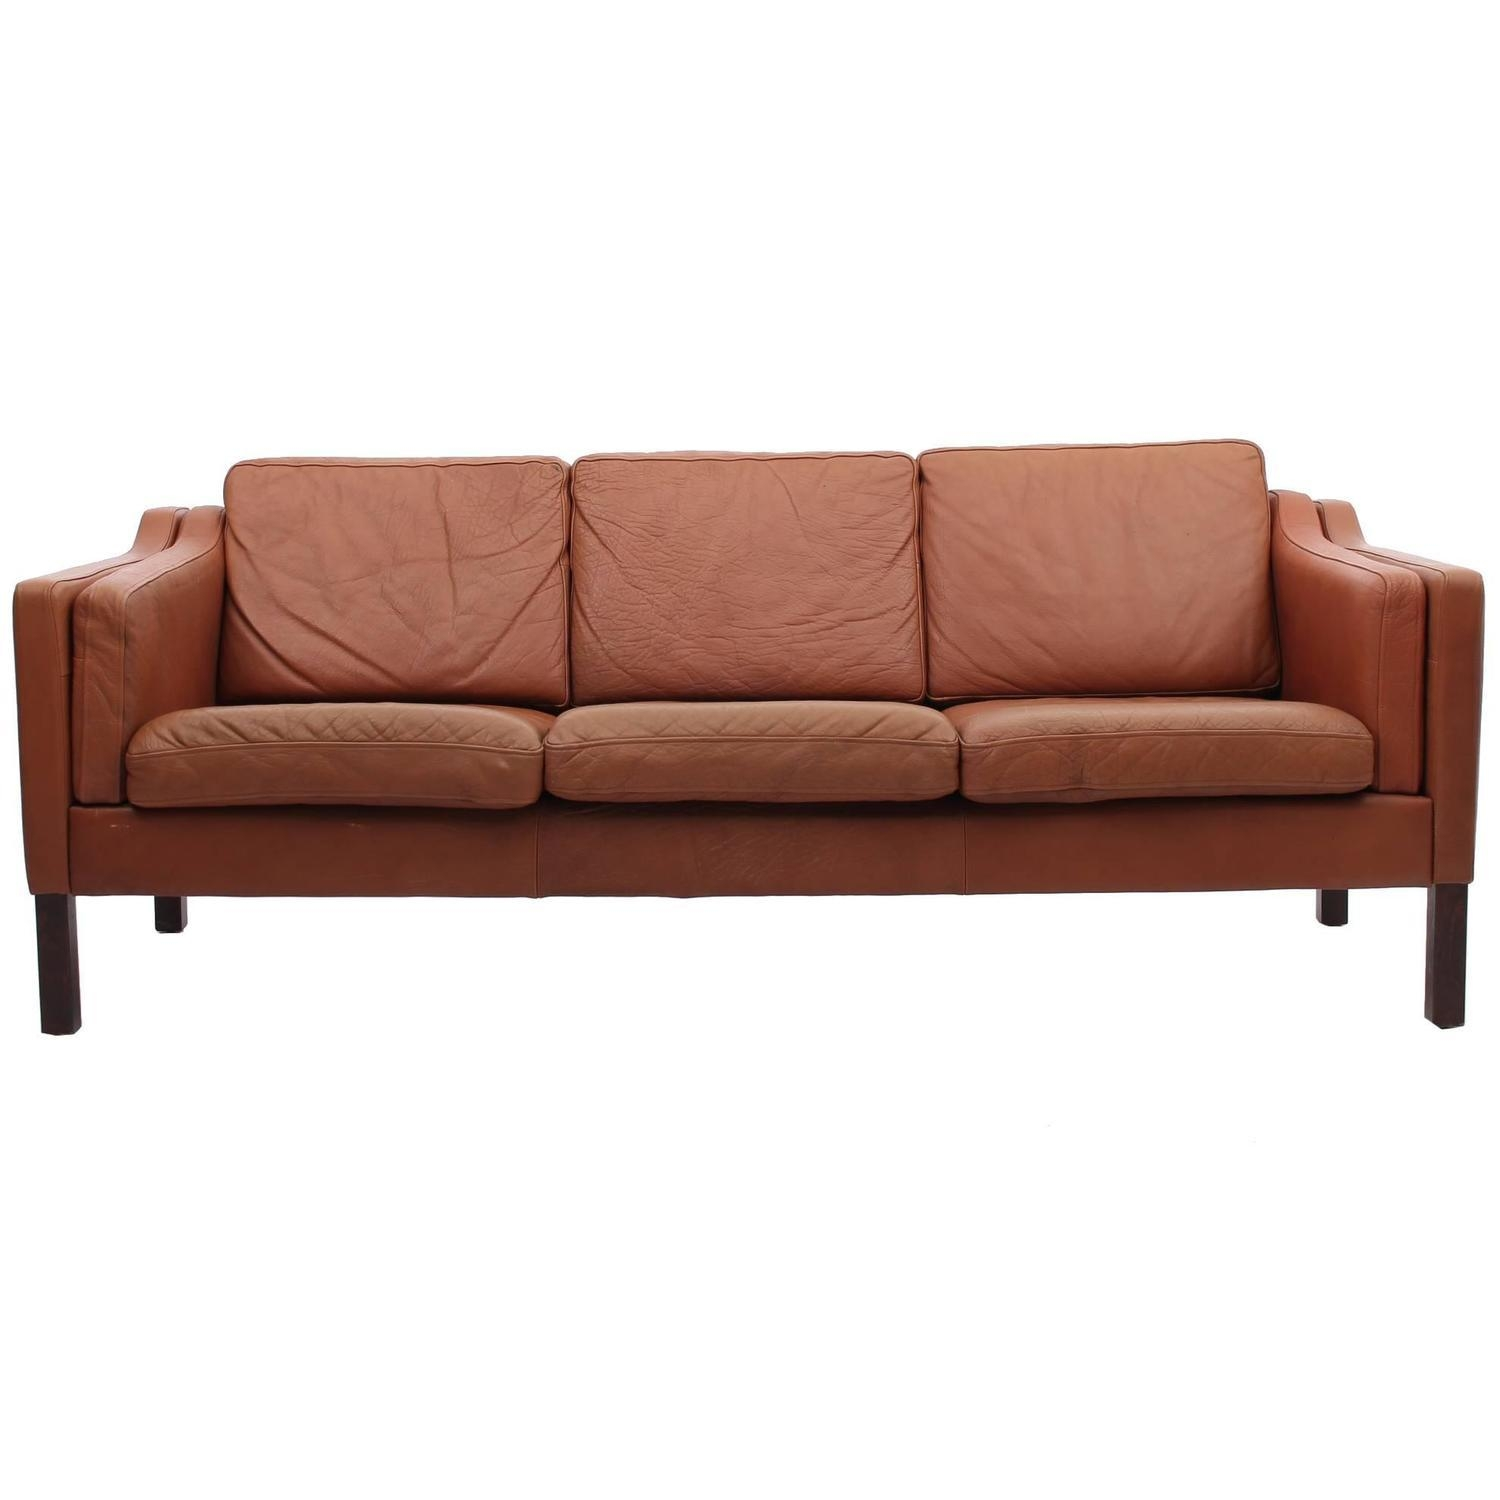 Sofas Center : Beige Leather Midury Modern Sofa Faux Sectional Intended For Mid Century Modern Leather Sectional (Image 13 of 20)